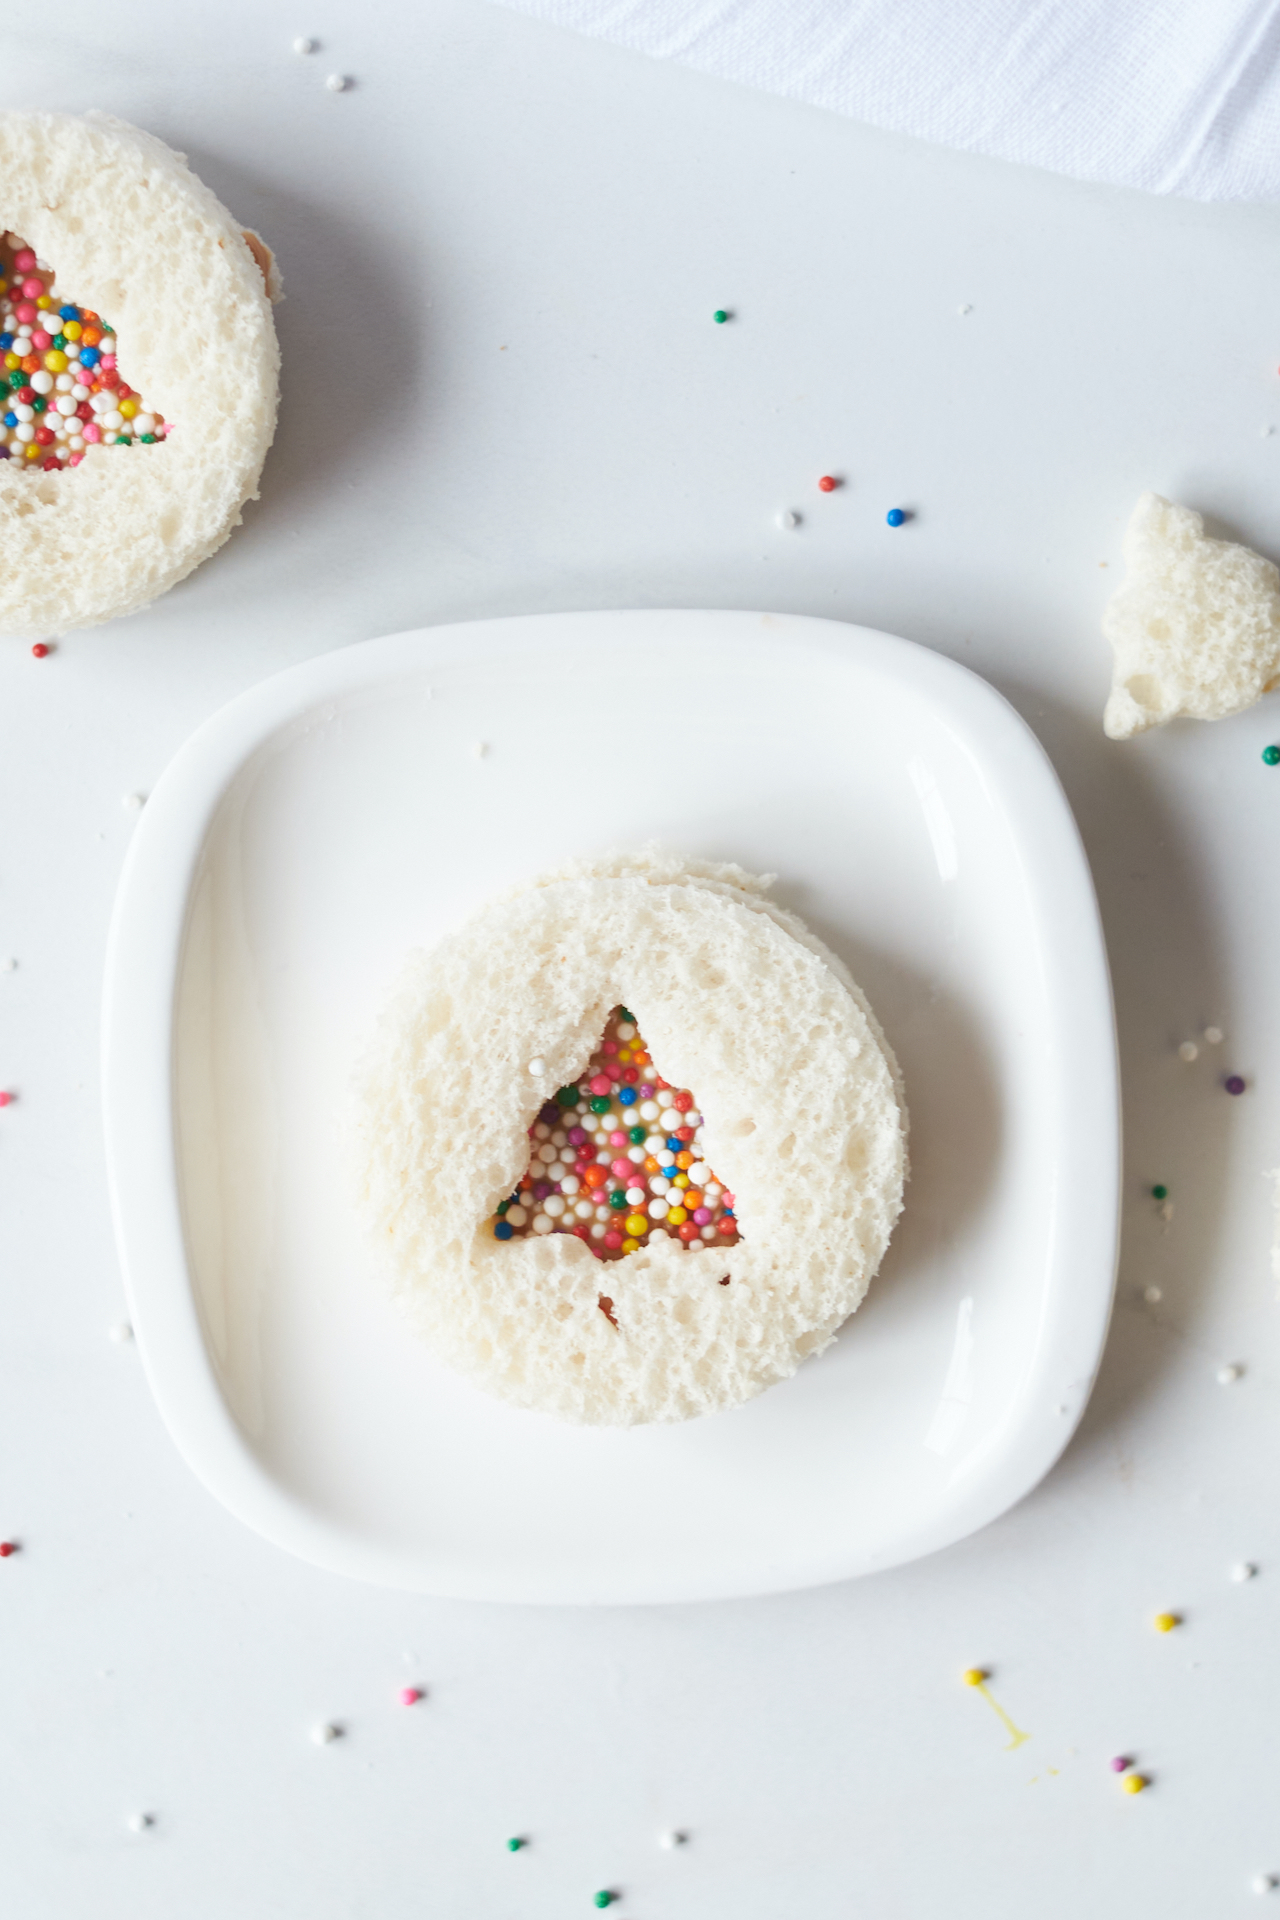 a homemade Uncrustables sitting on a white plate with color sprinkles surrounding the plate